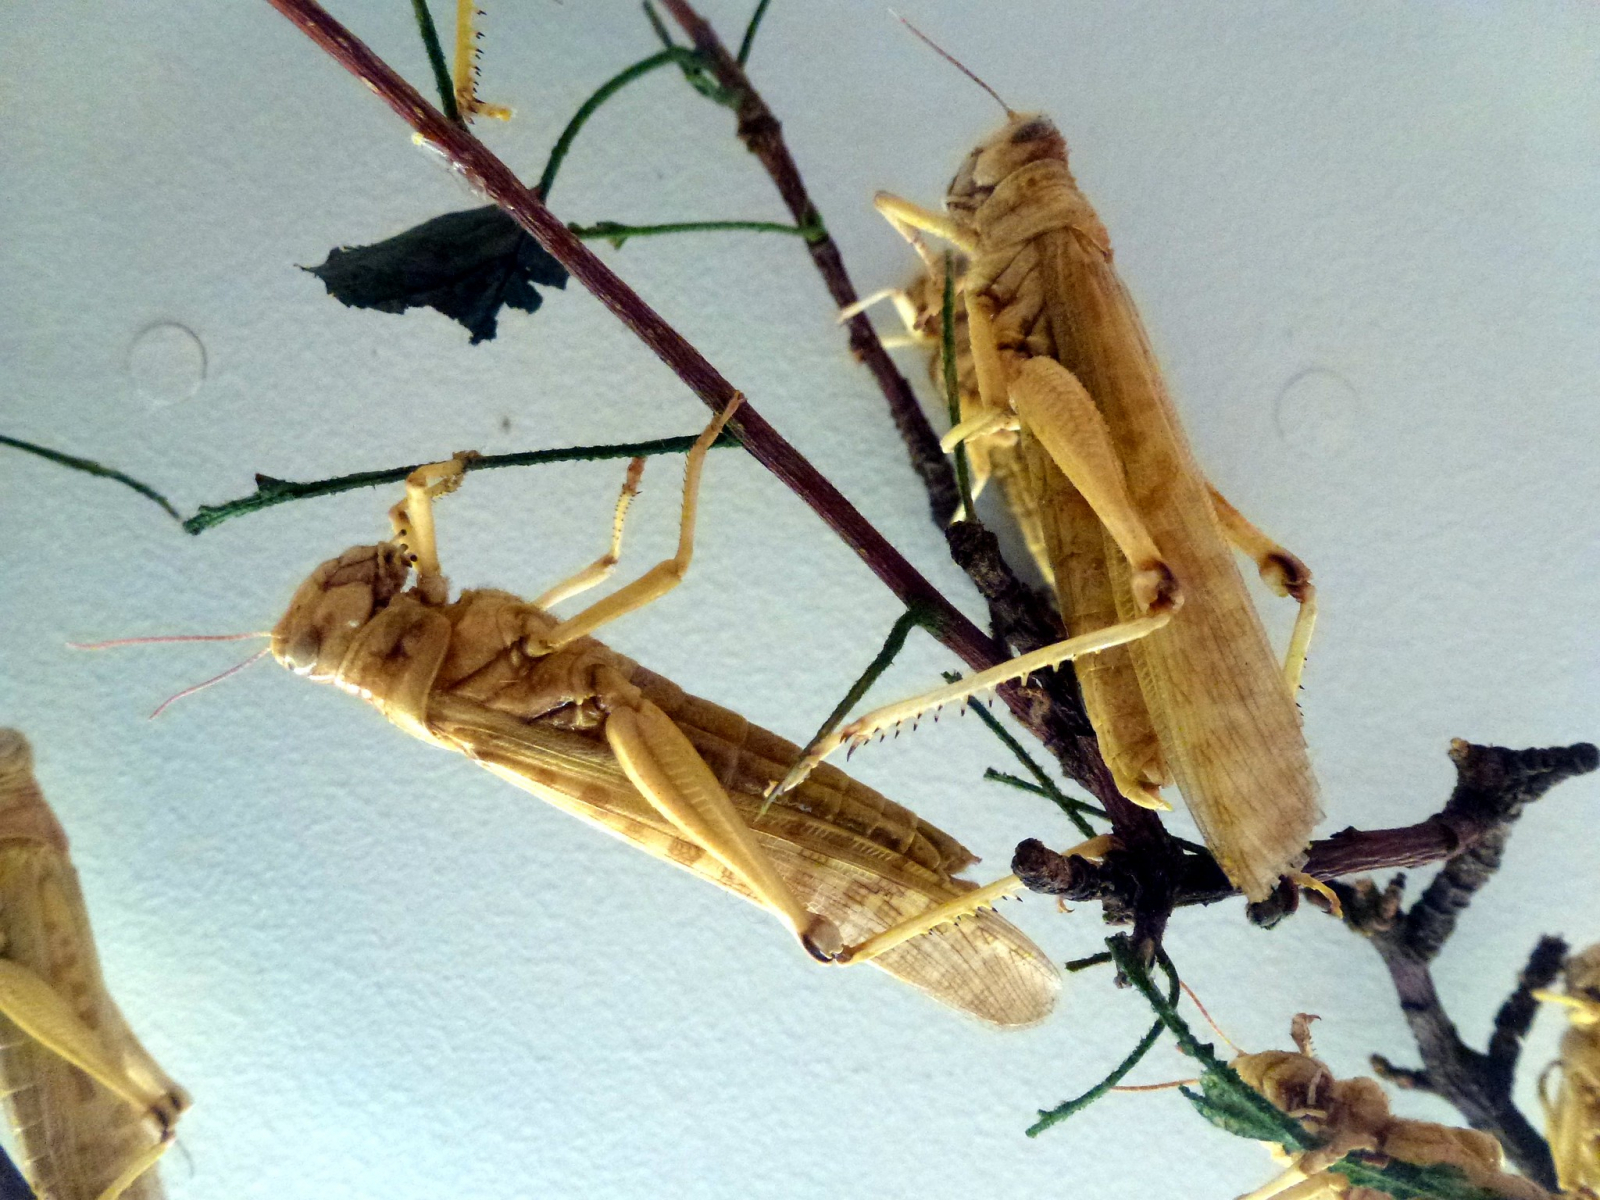 NP Explained: How easy is it to kill a swarm of locusts?